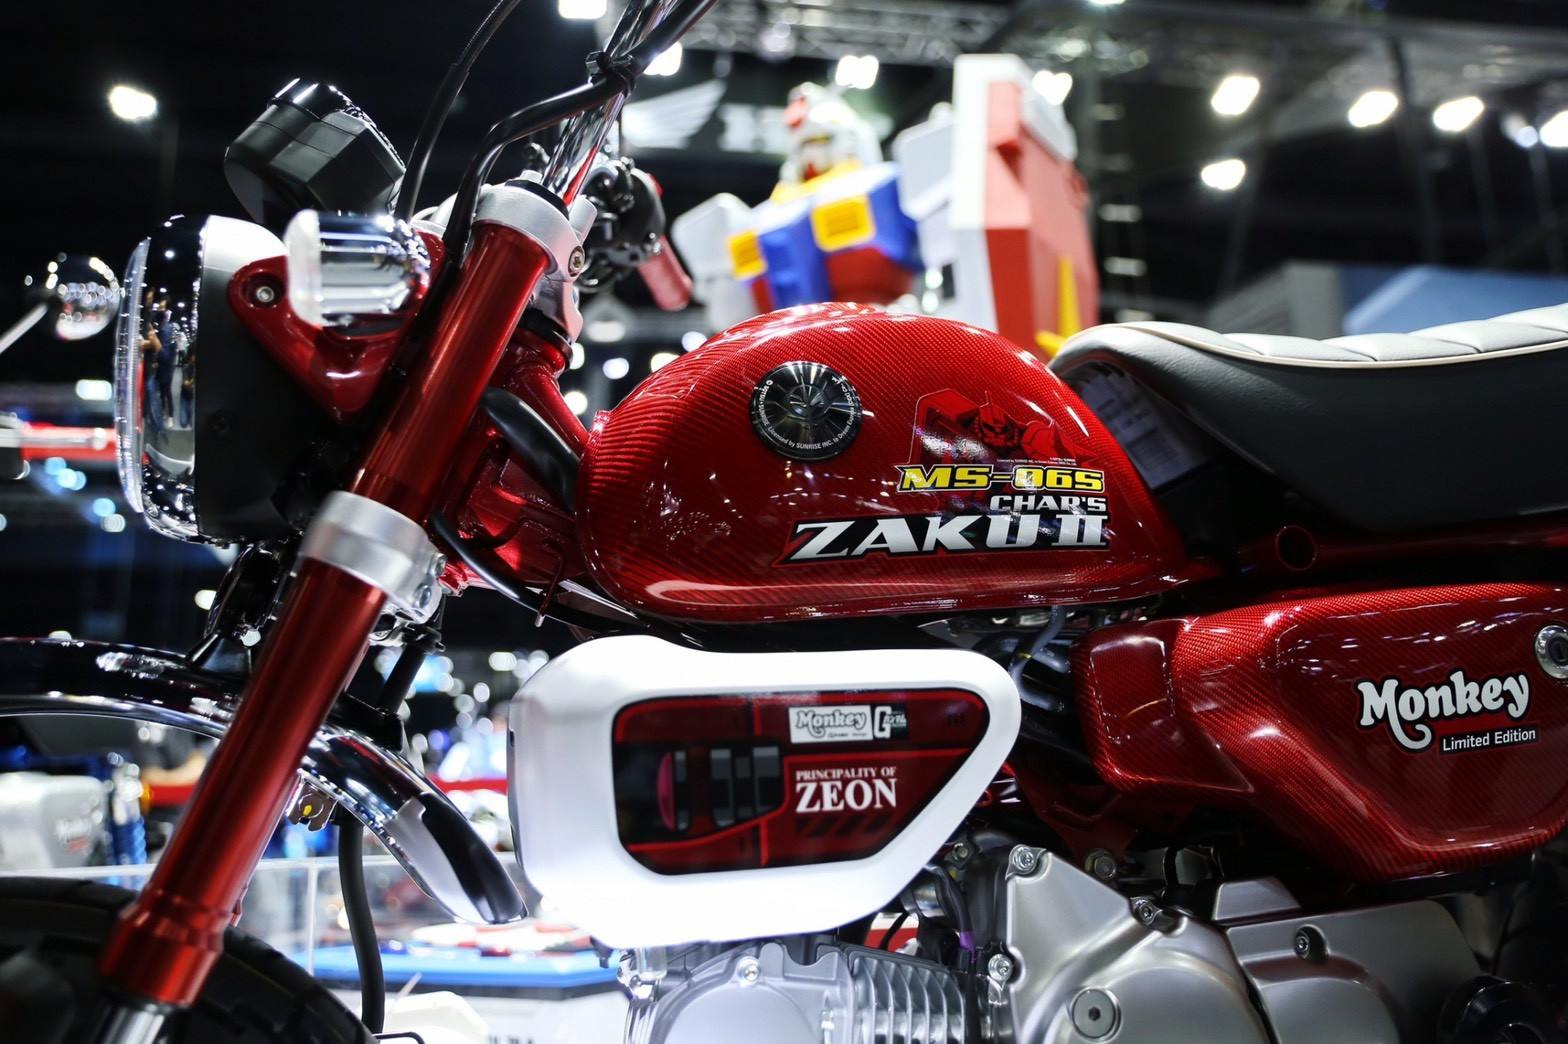 Honda Thailand Unveils Two Limited Monkey Variants Adrenaline Culture Of Motorcycle And Speed